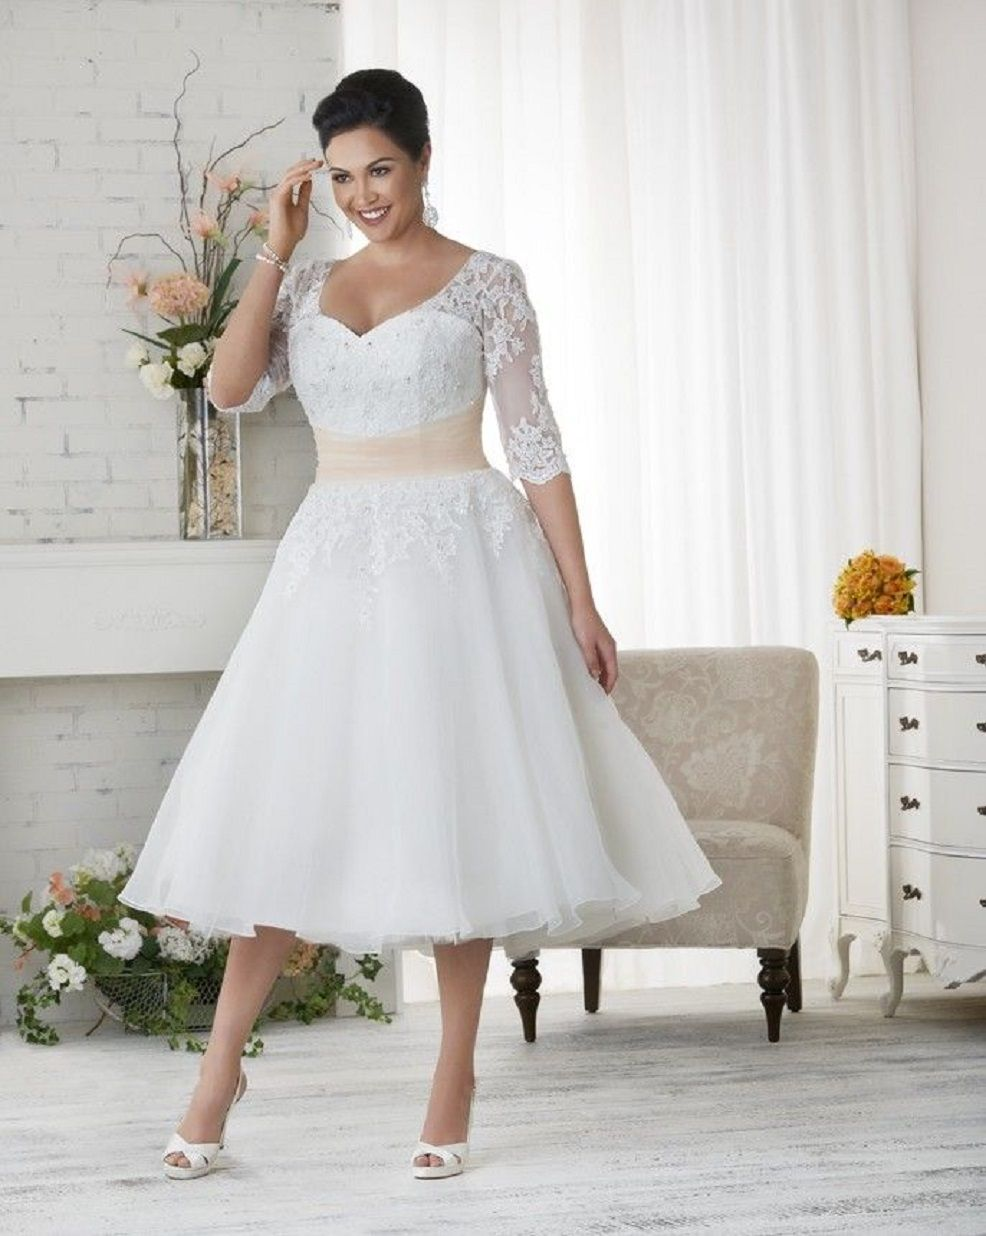 5 Plus Size Wedding Dresses That Makes You Fabulous In Your Big Day In 2020 Knee Length Wedding Dress Half Sleeve Wedding Dress Short Wedding Dress